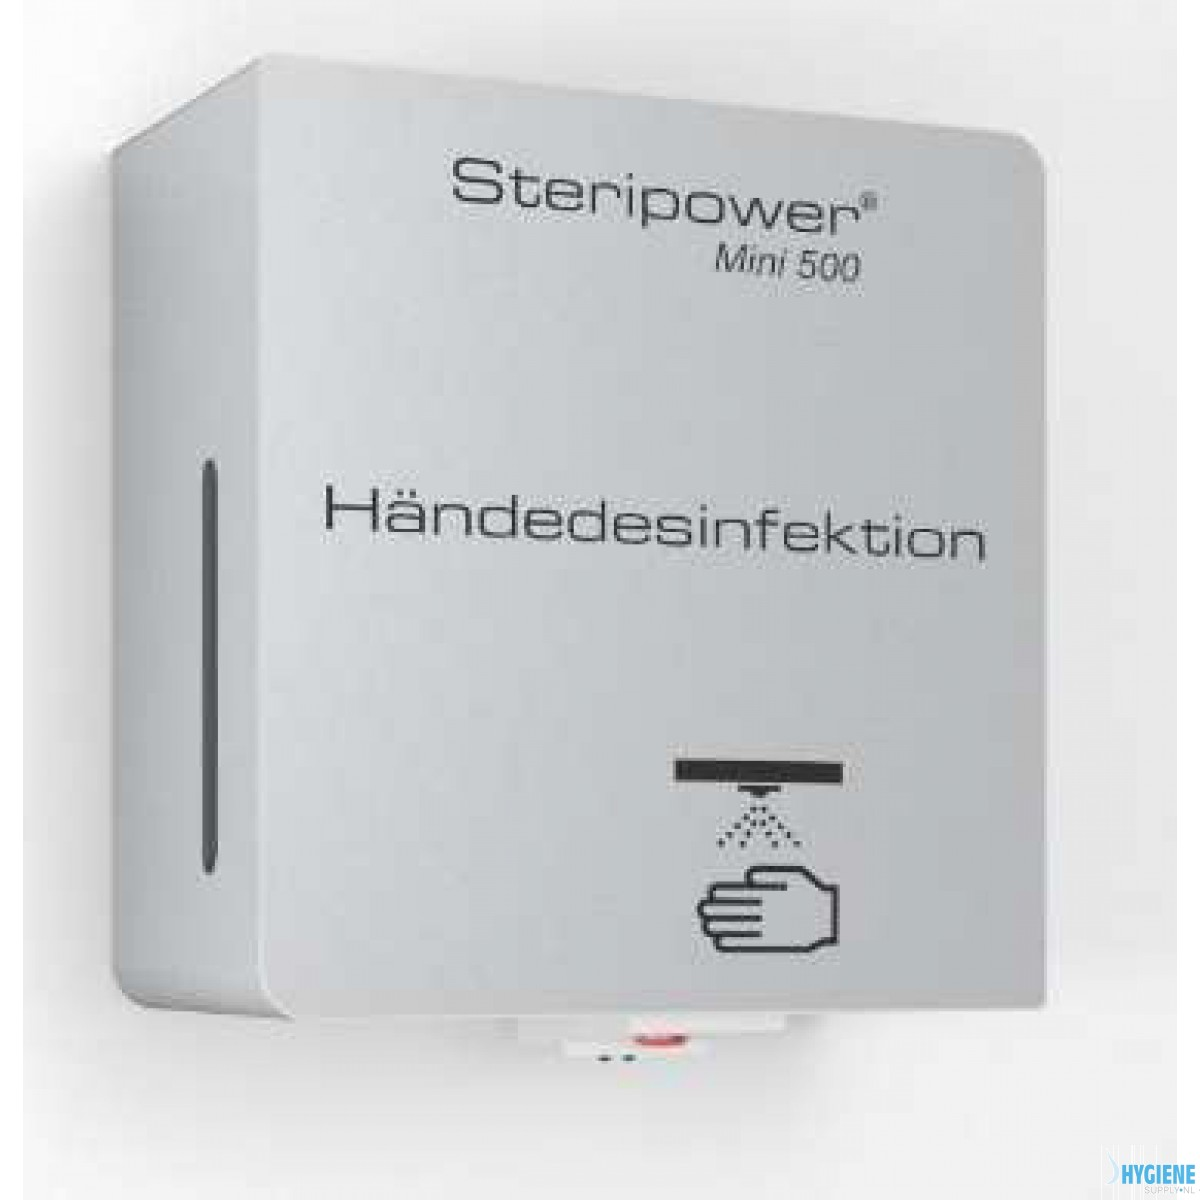 Steripower® Mini 500 handdesinfectieunit roestvrijstaal accu 40501 43480272 Wit